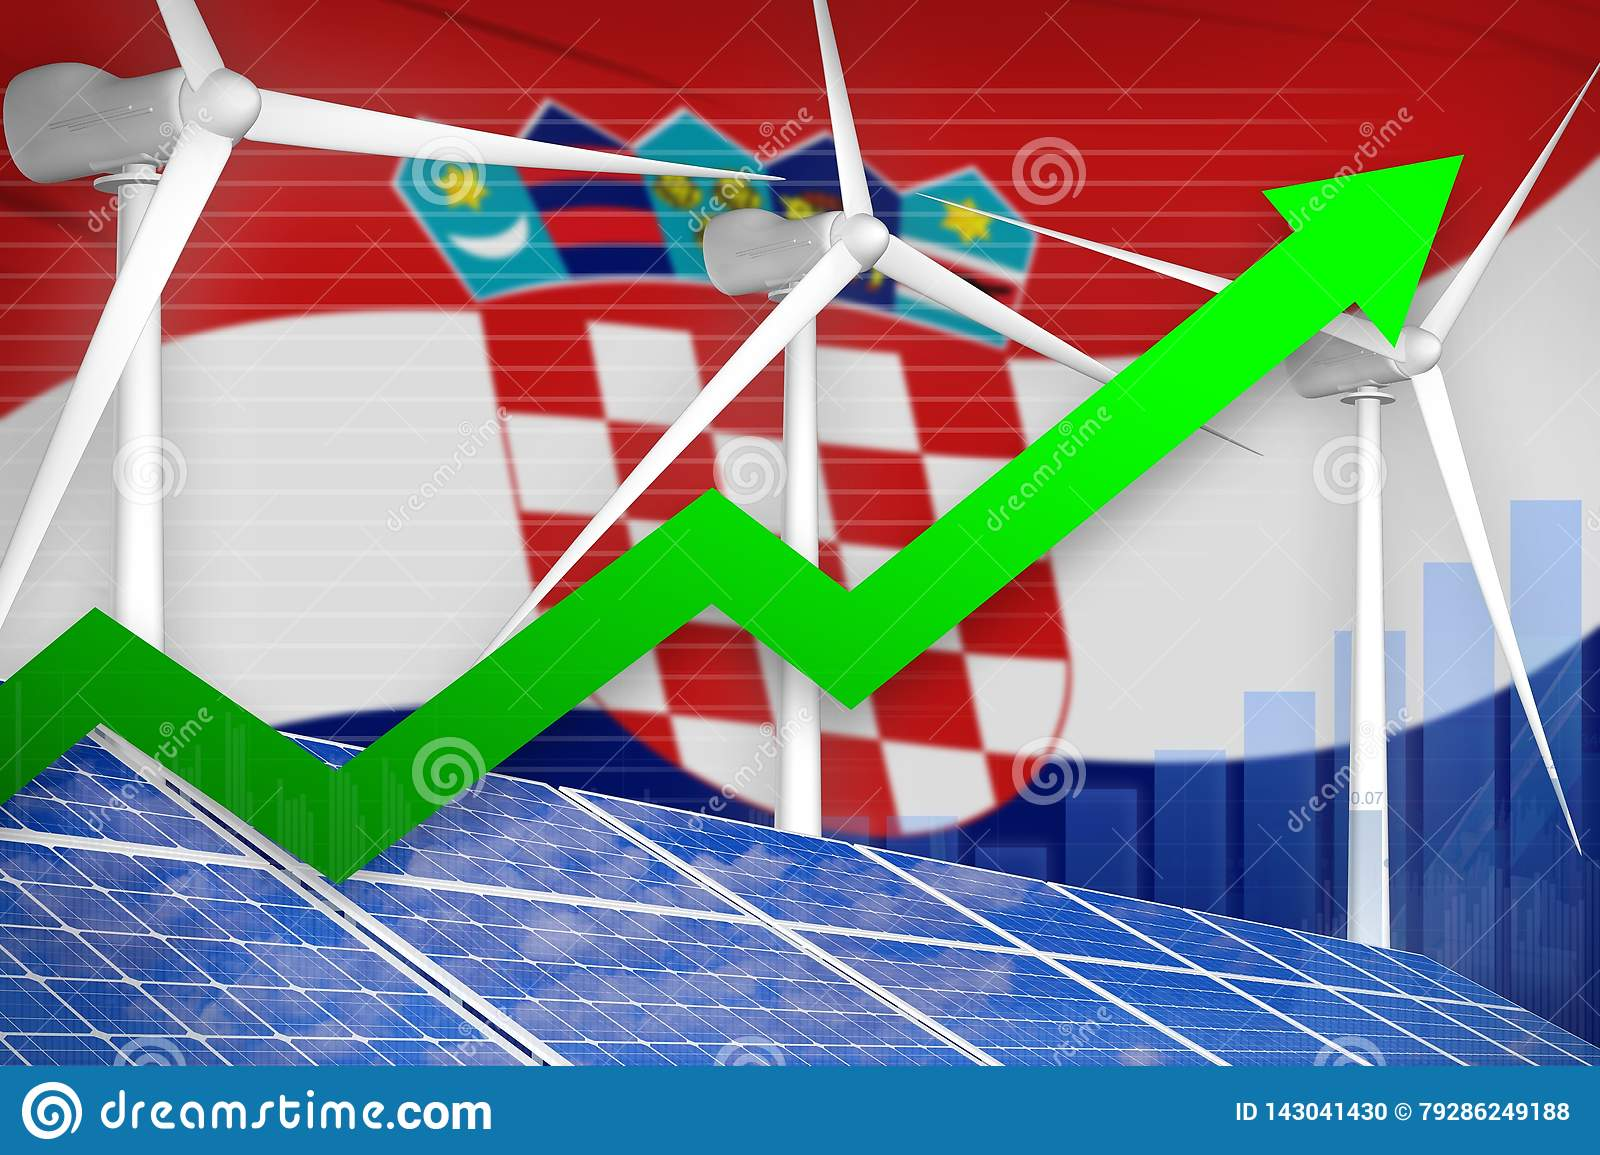 Croatia solar and wind energy rising chart, arrow up - modern natural energy industrial illustration. 3D Illustration